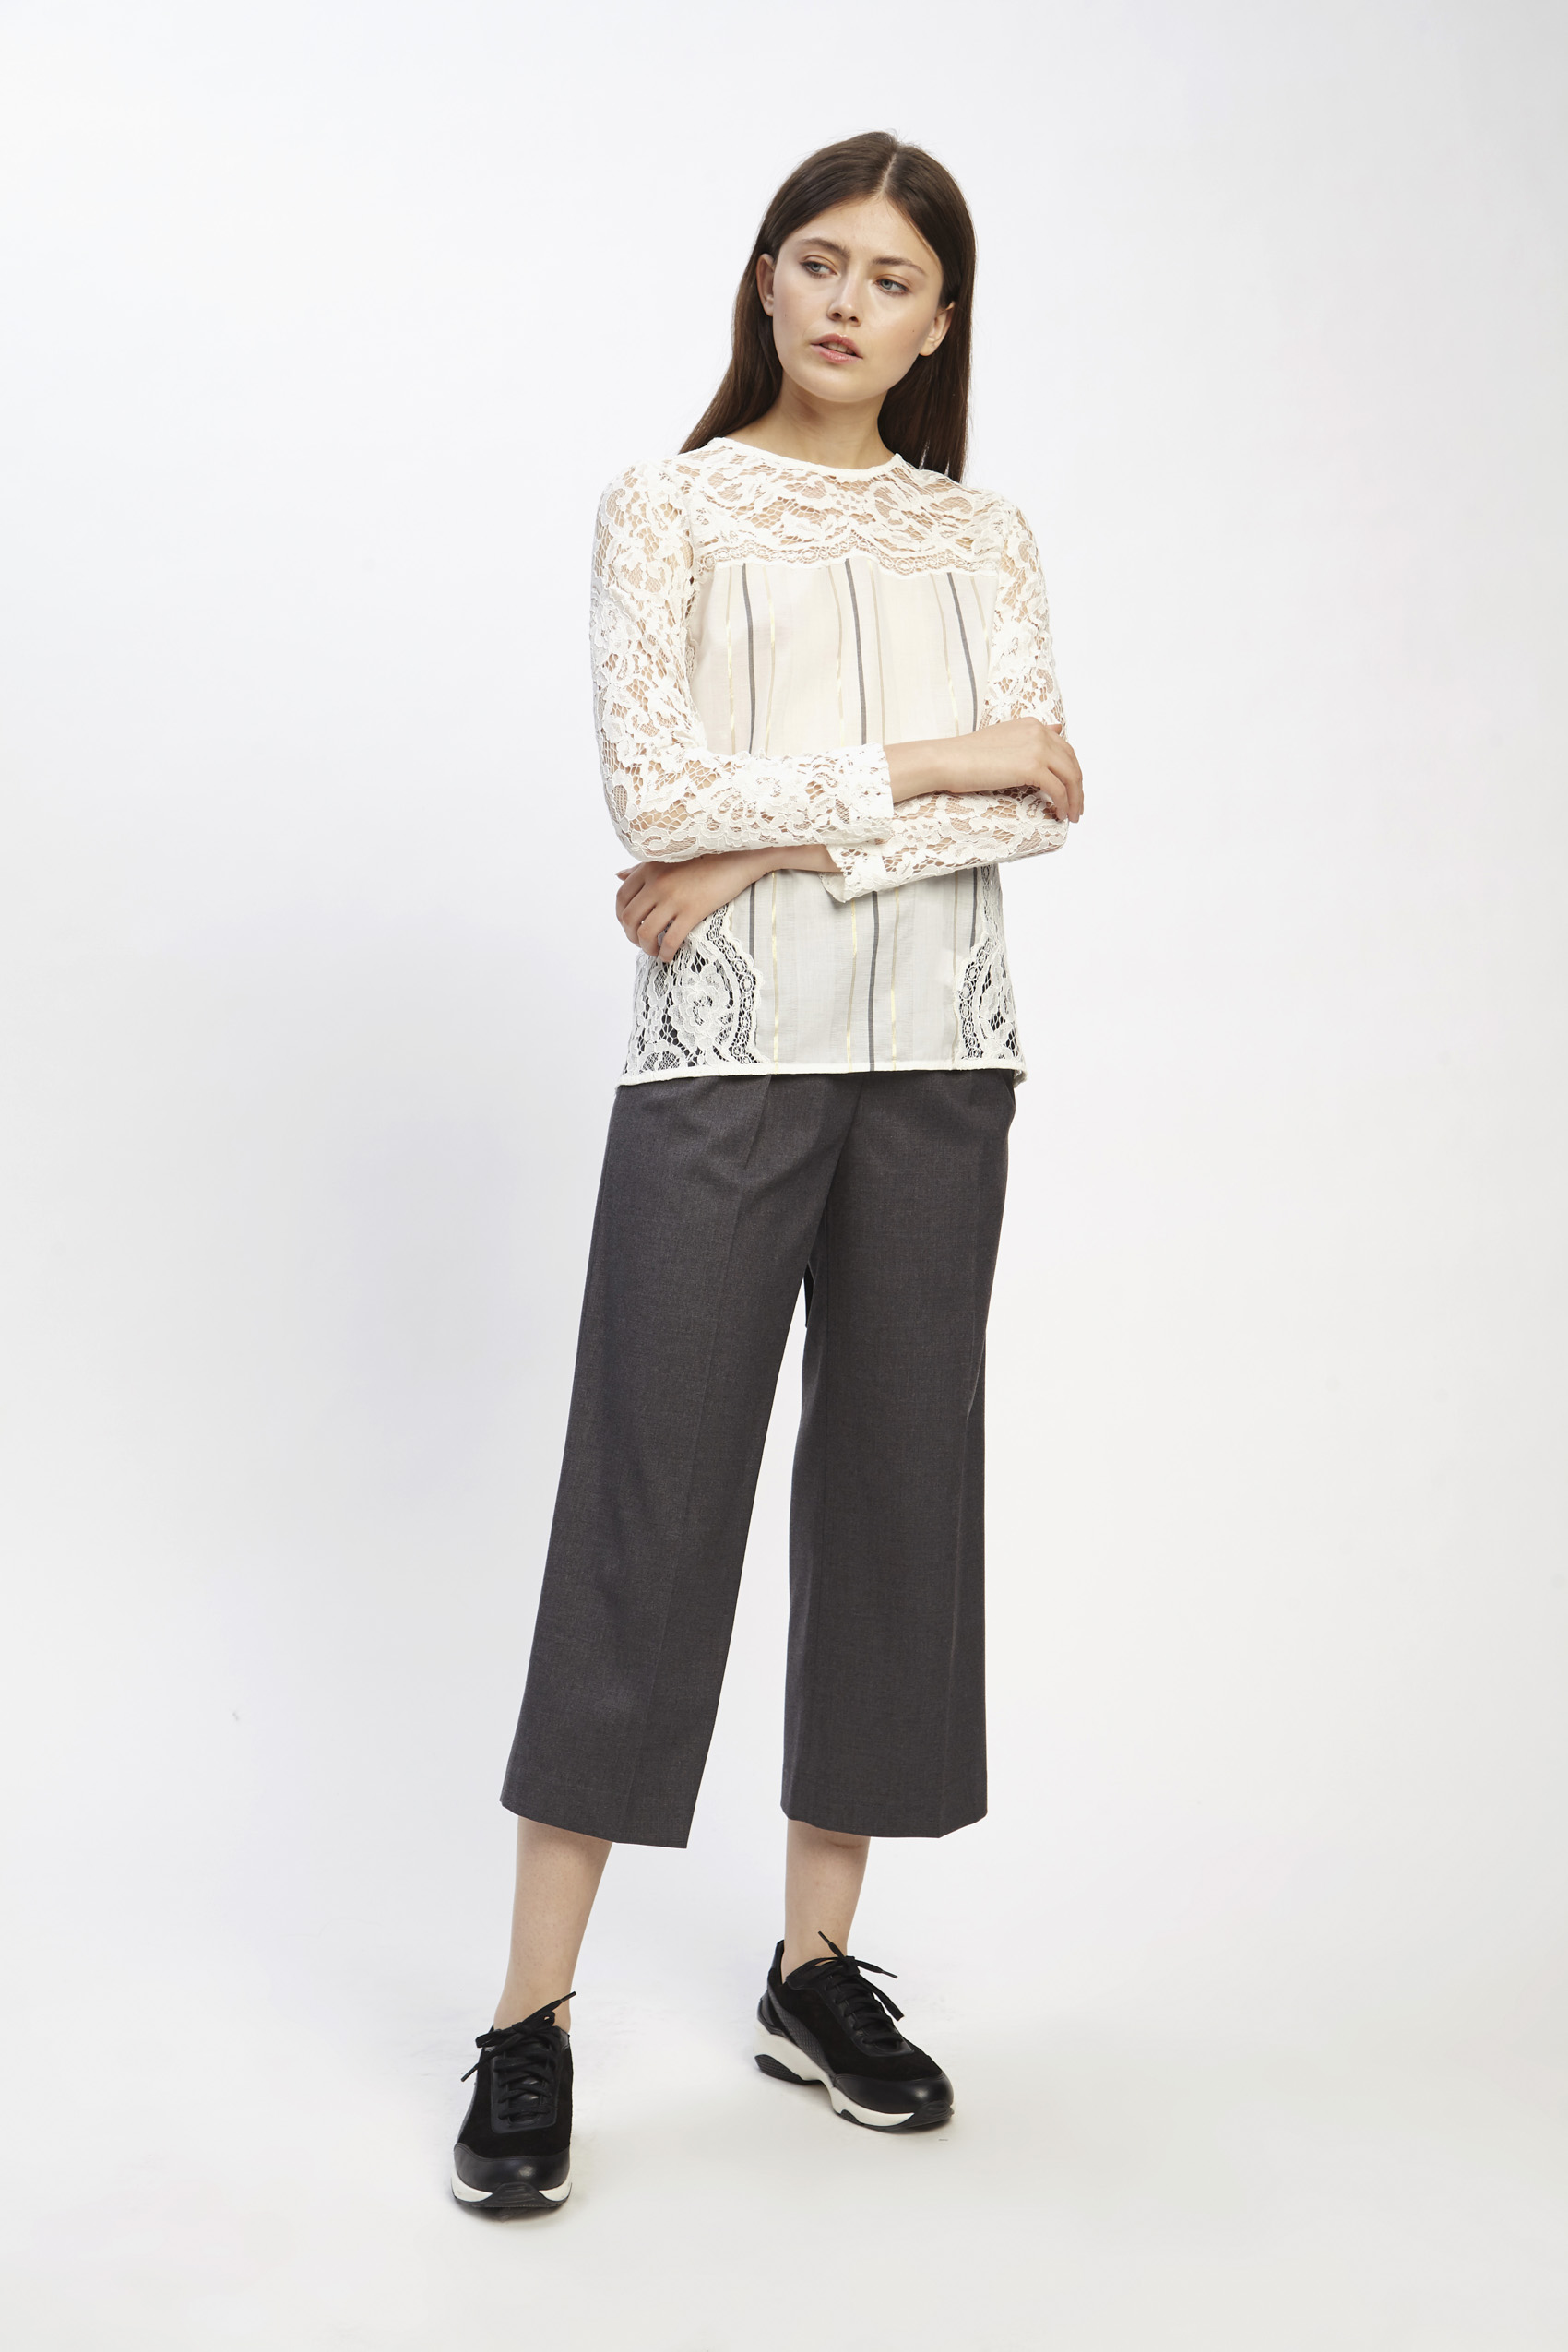 awada_camisa-heather_55-23-2019__picture-2606